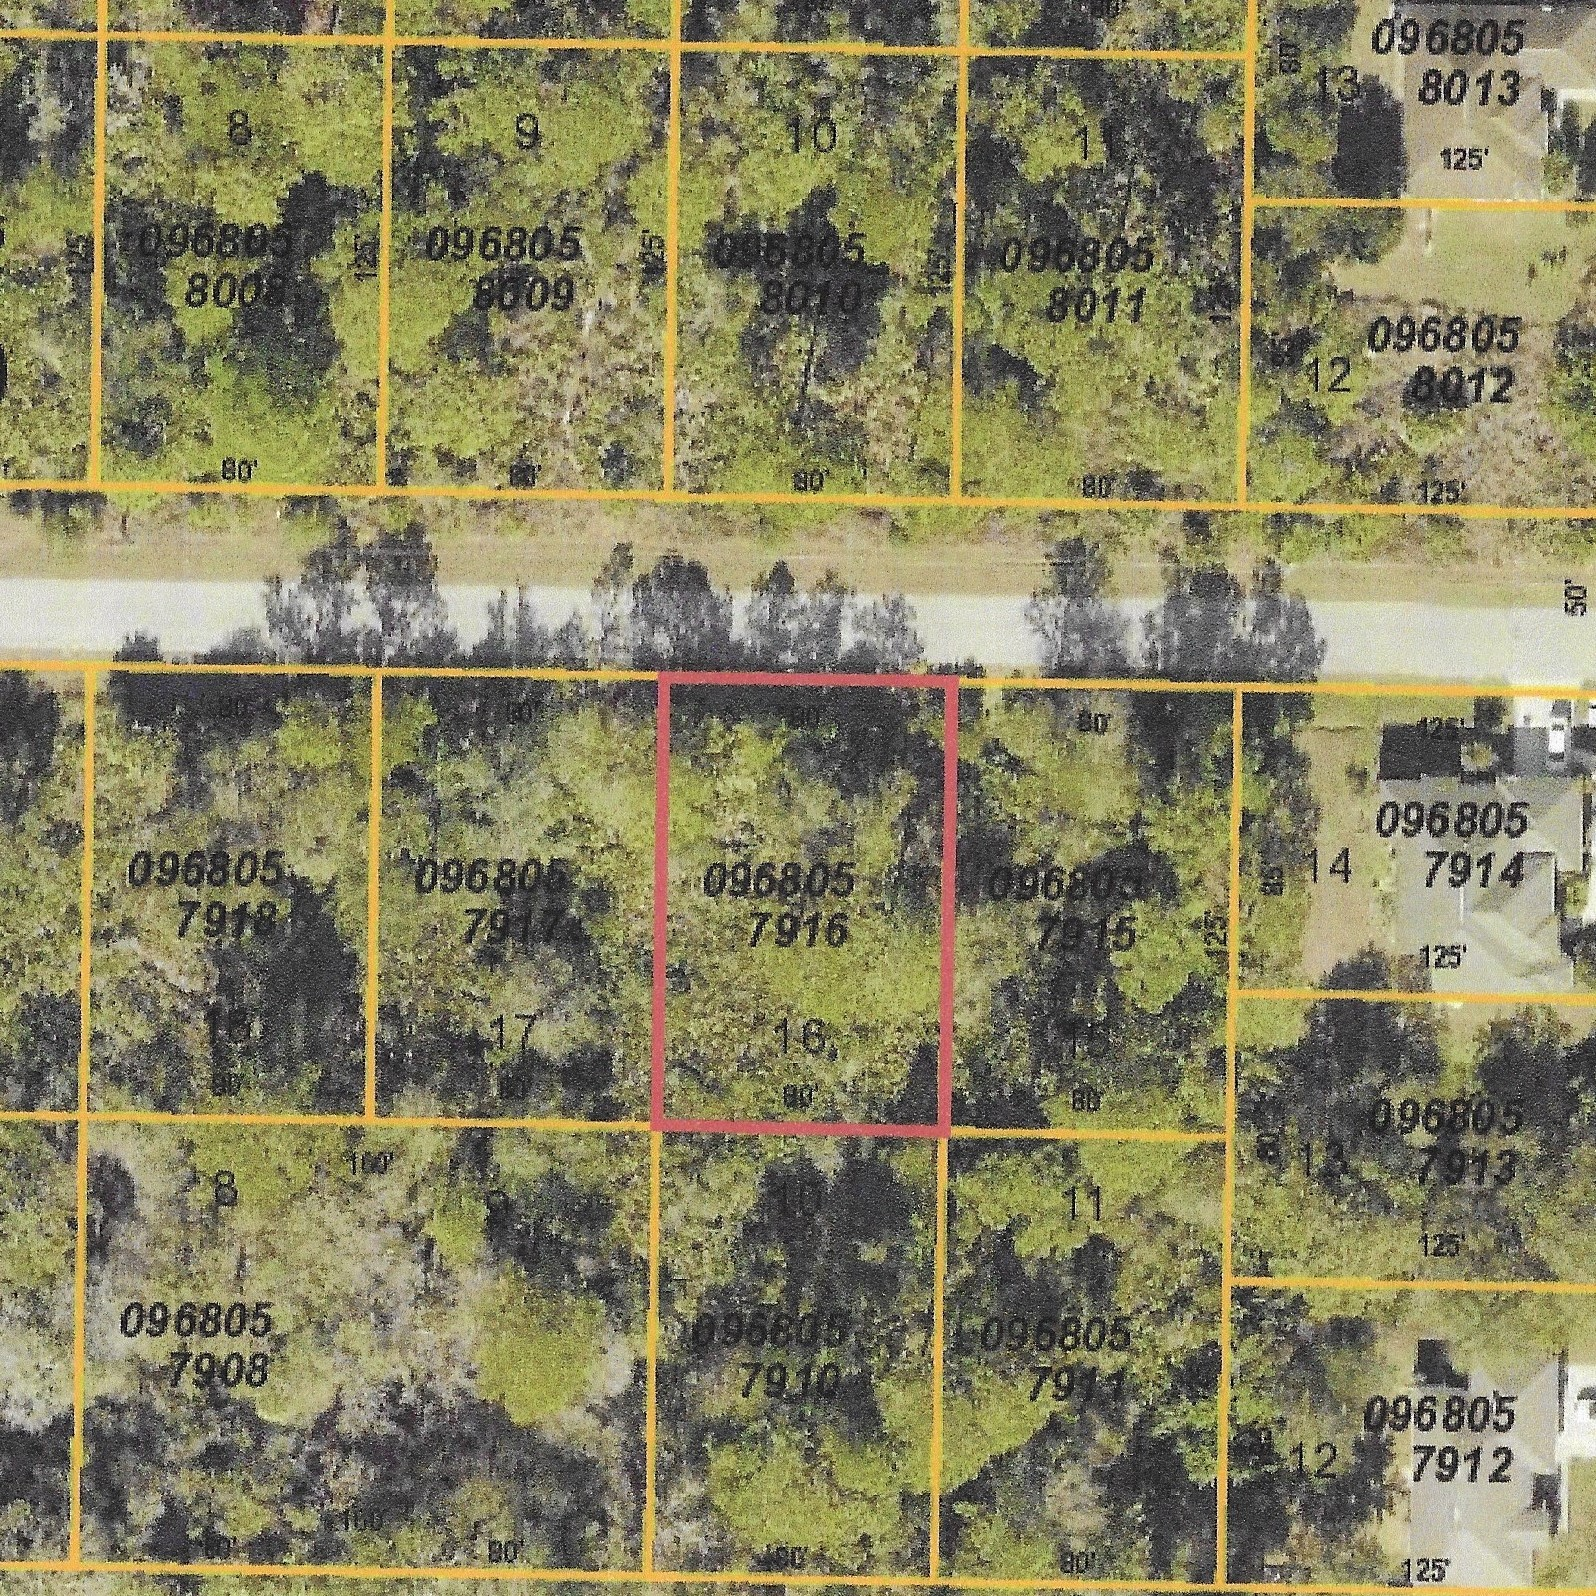 Land for Sale in North Port, Florida | Prime North Port Lots | Our lots make a good investment property in North Port, FL.